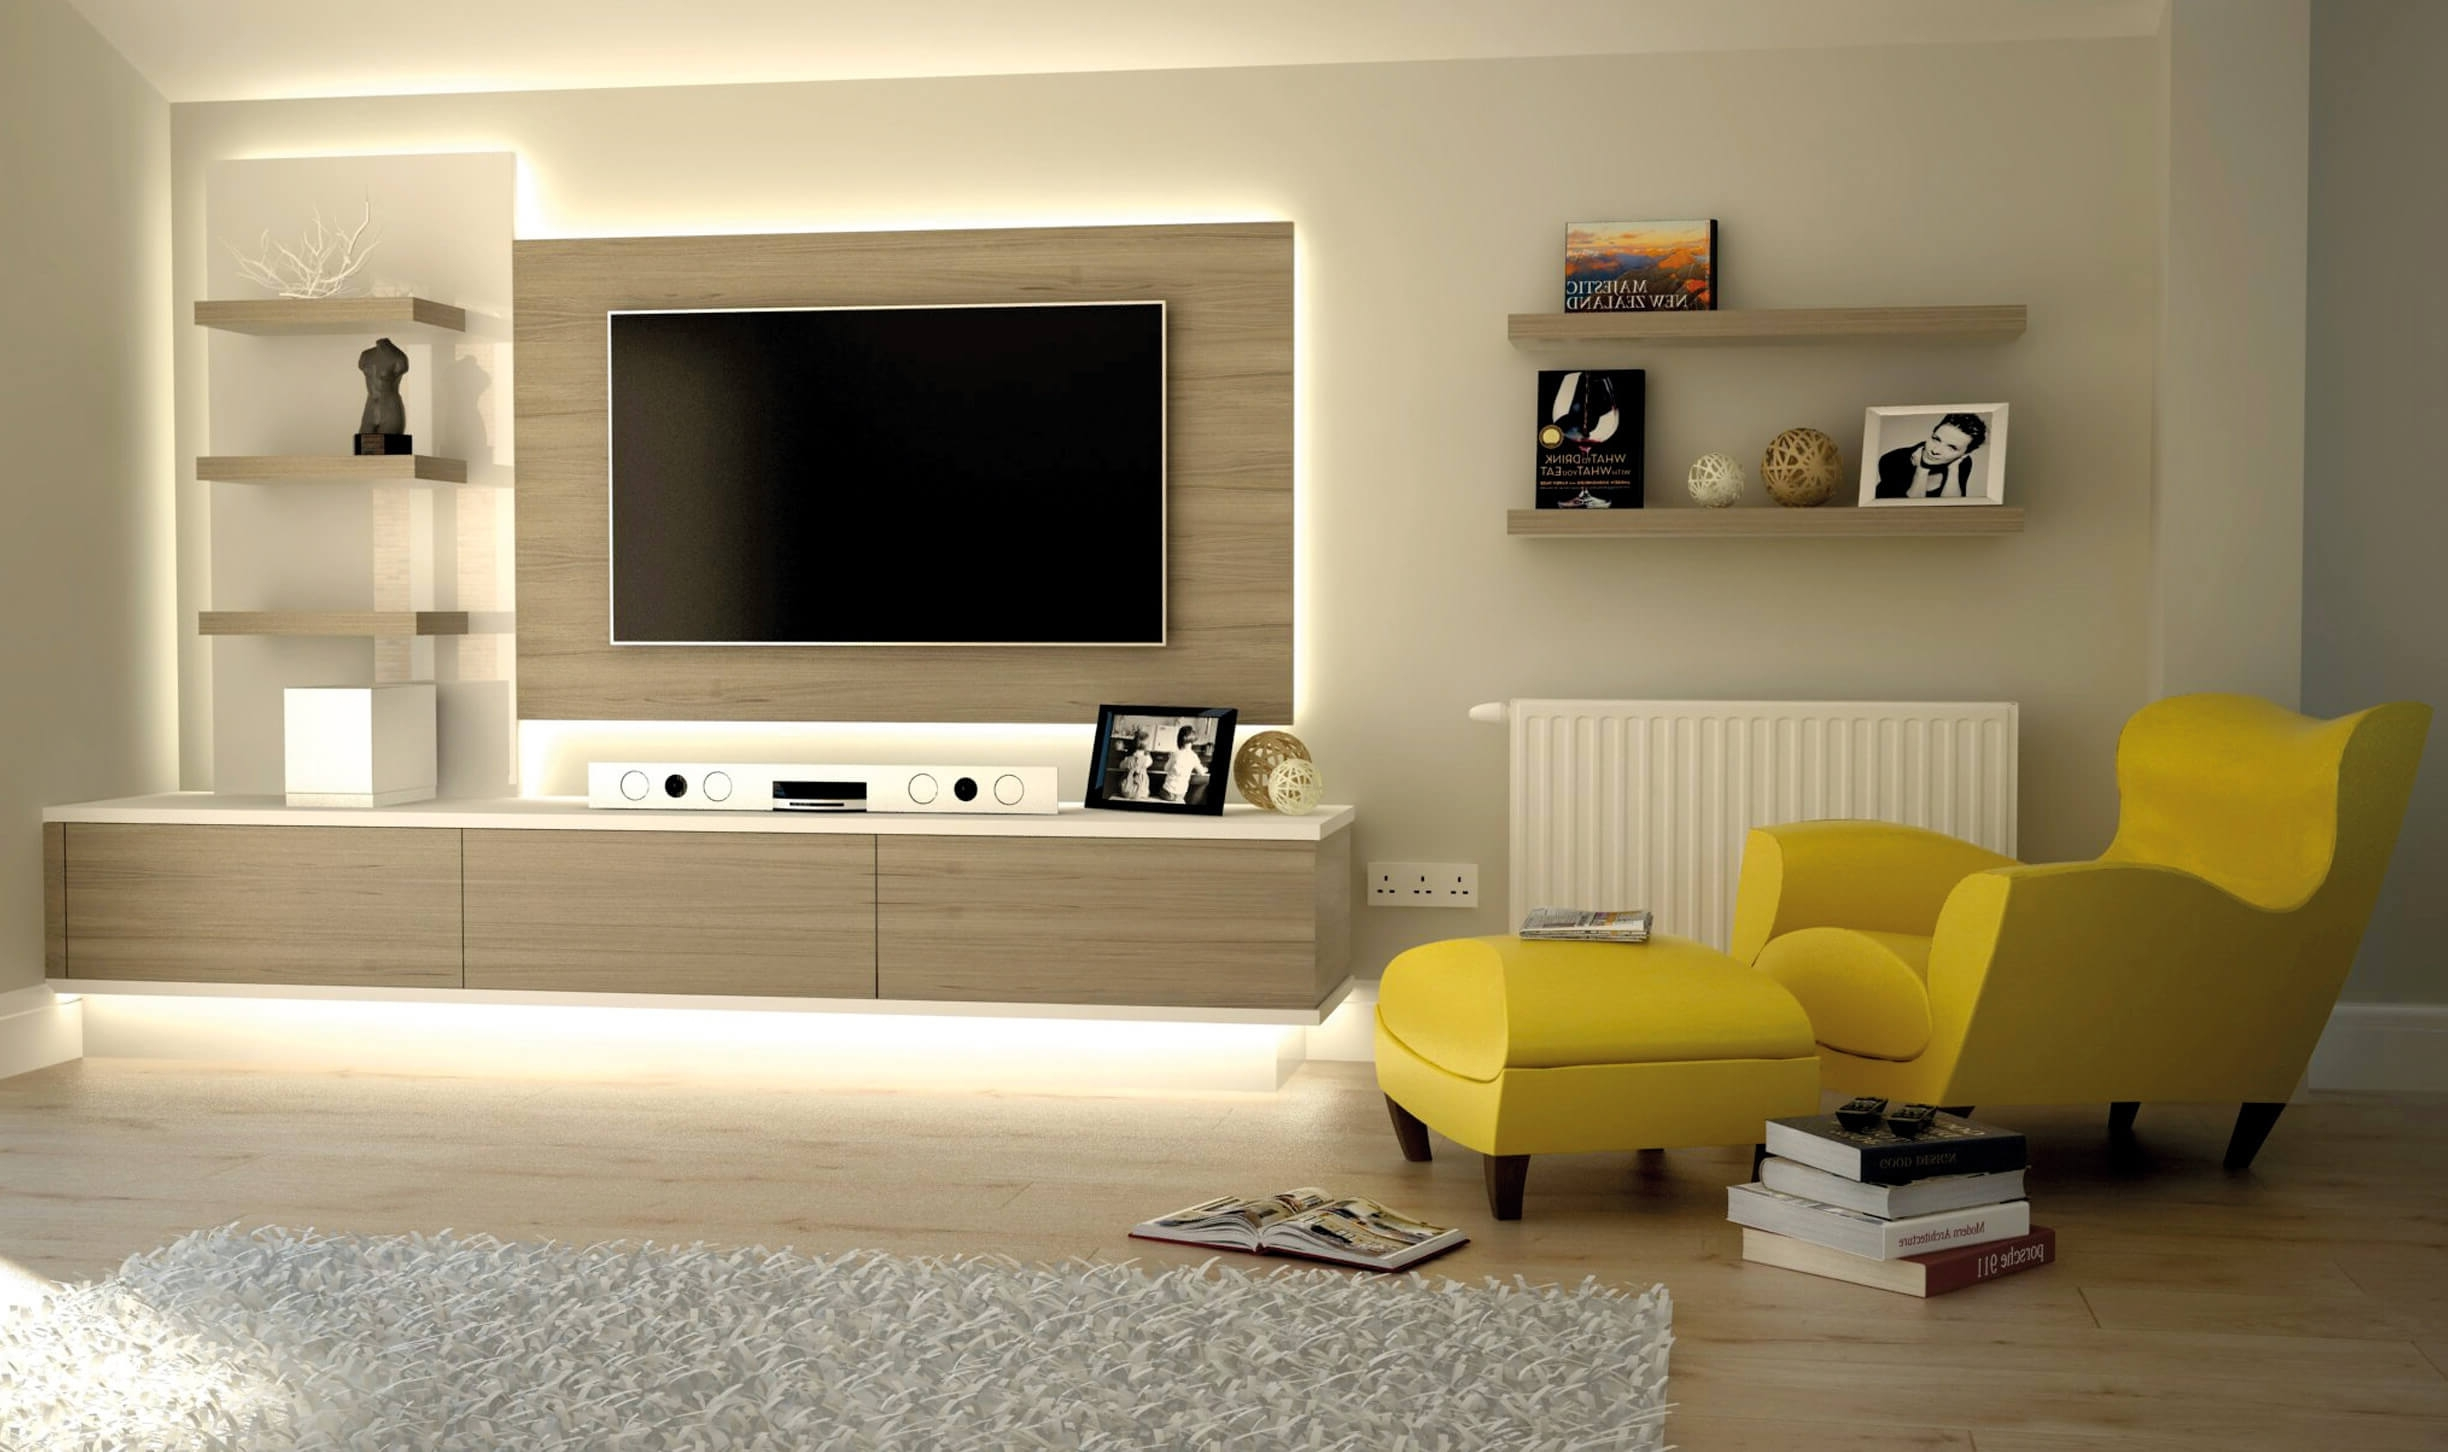 Bespoke Tv Cabinets Bookcases And Storage Units For Over Living In Well Known Bespoke Tv Stand (View 2 of 15)